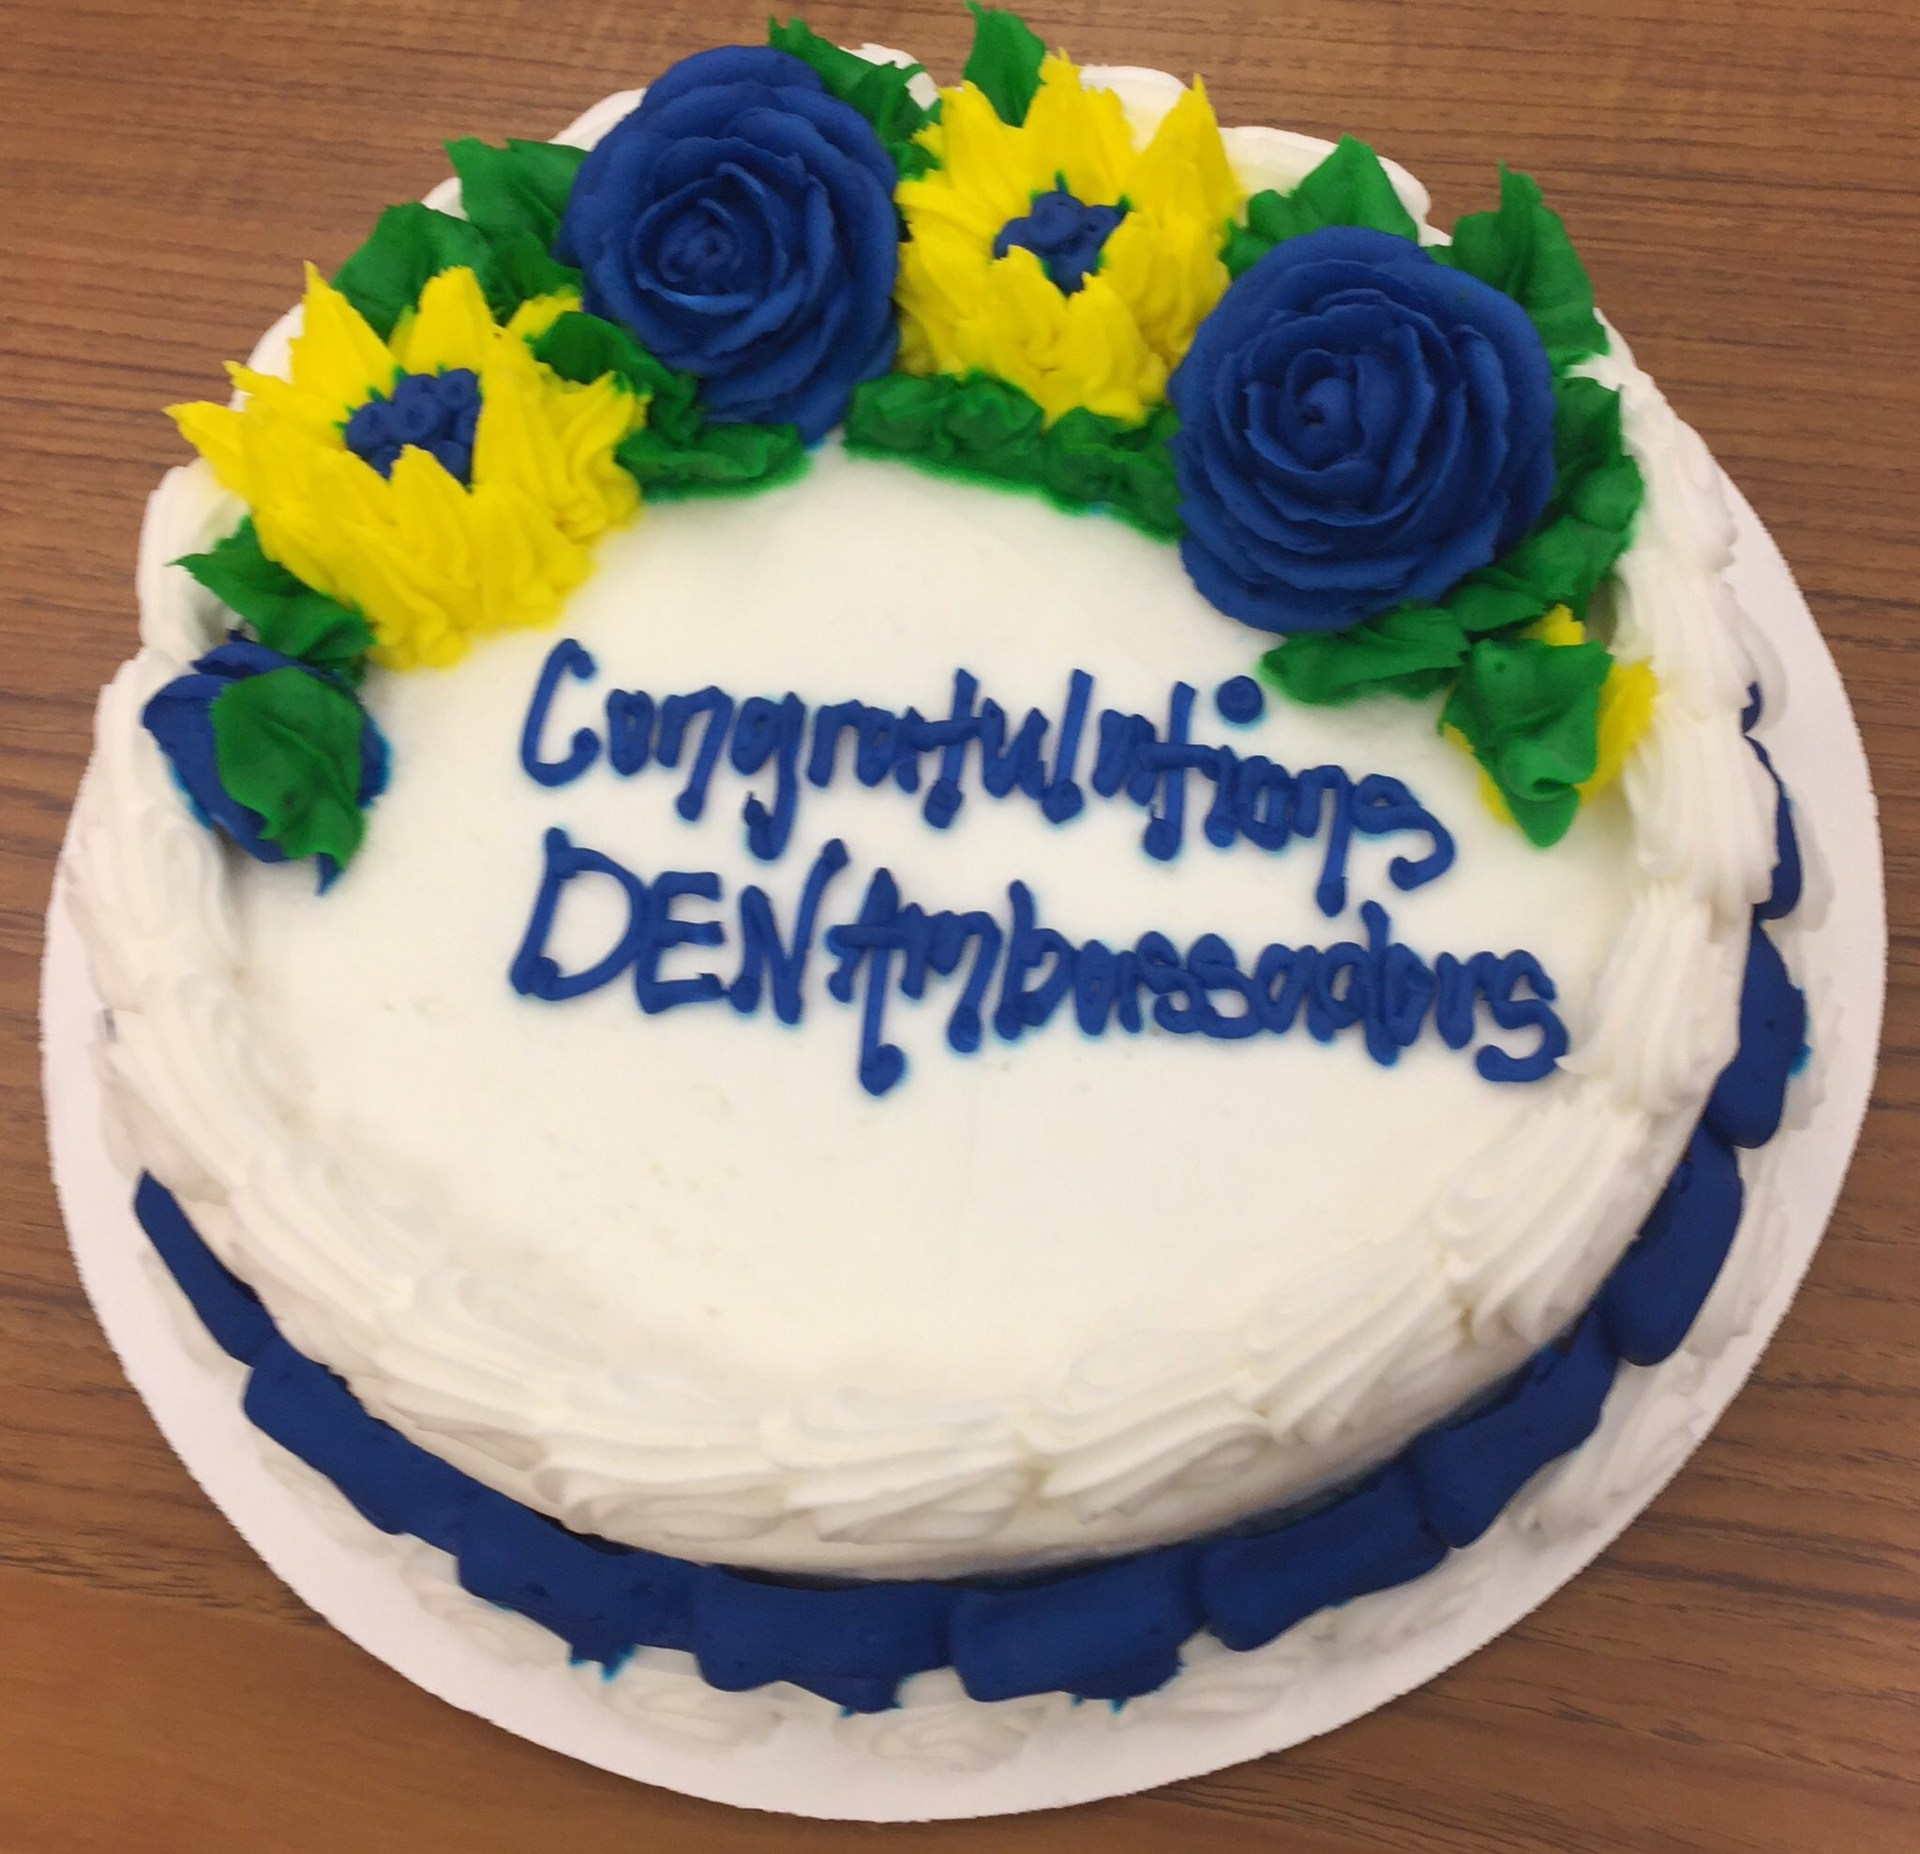 Davis-Townsend celebrates newly named DEN Ambassadors.